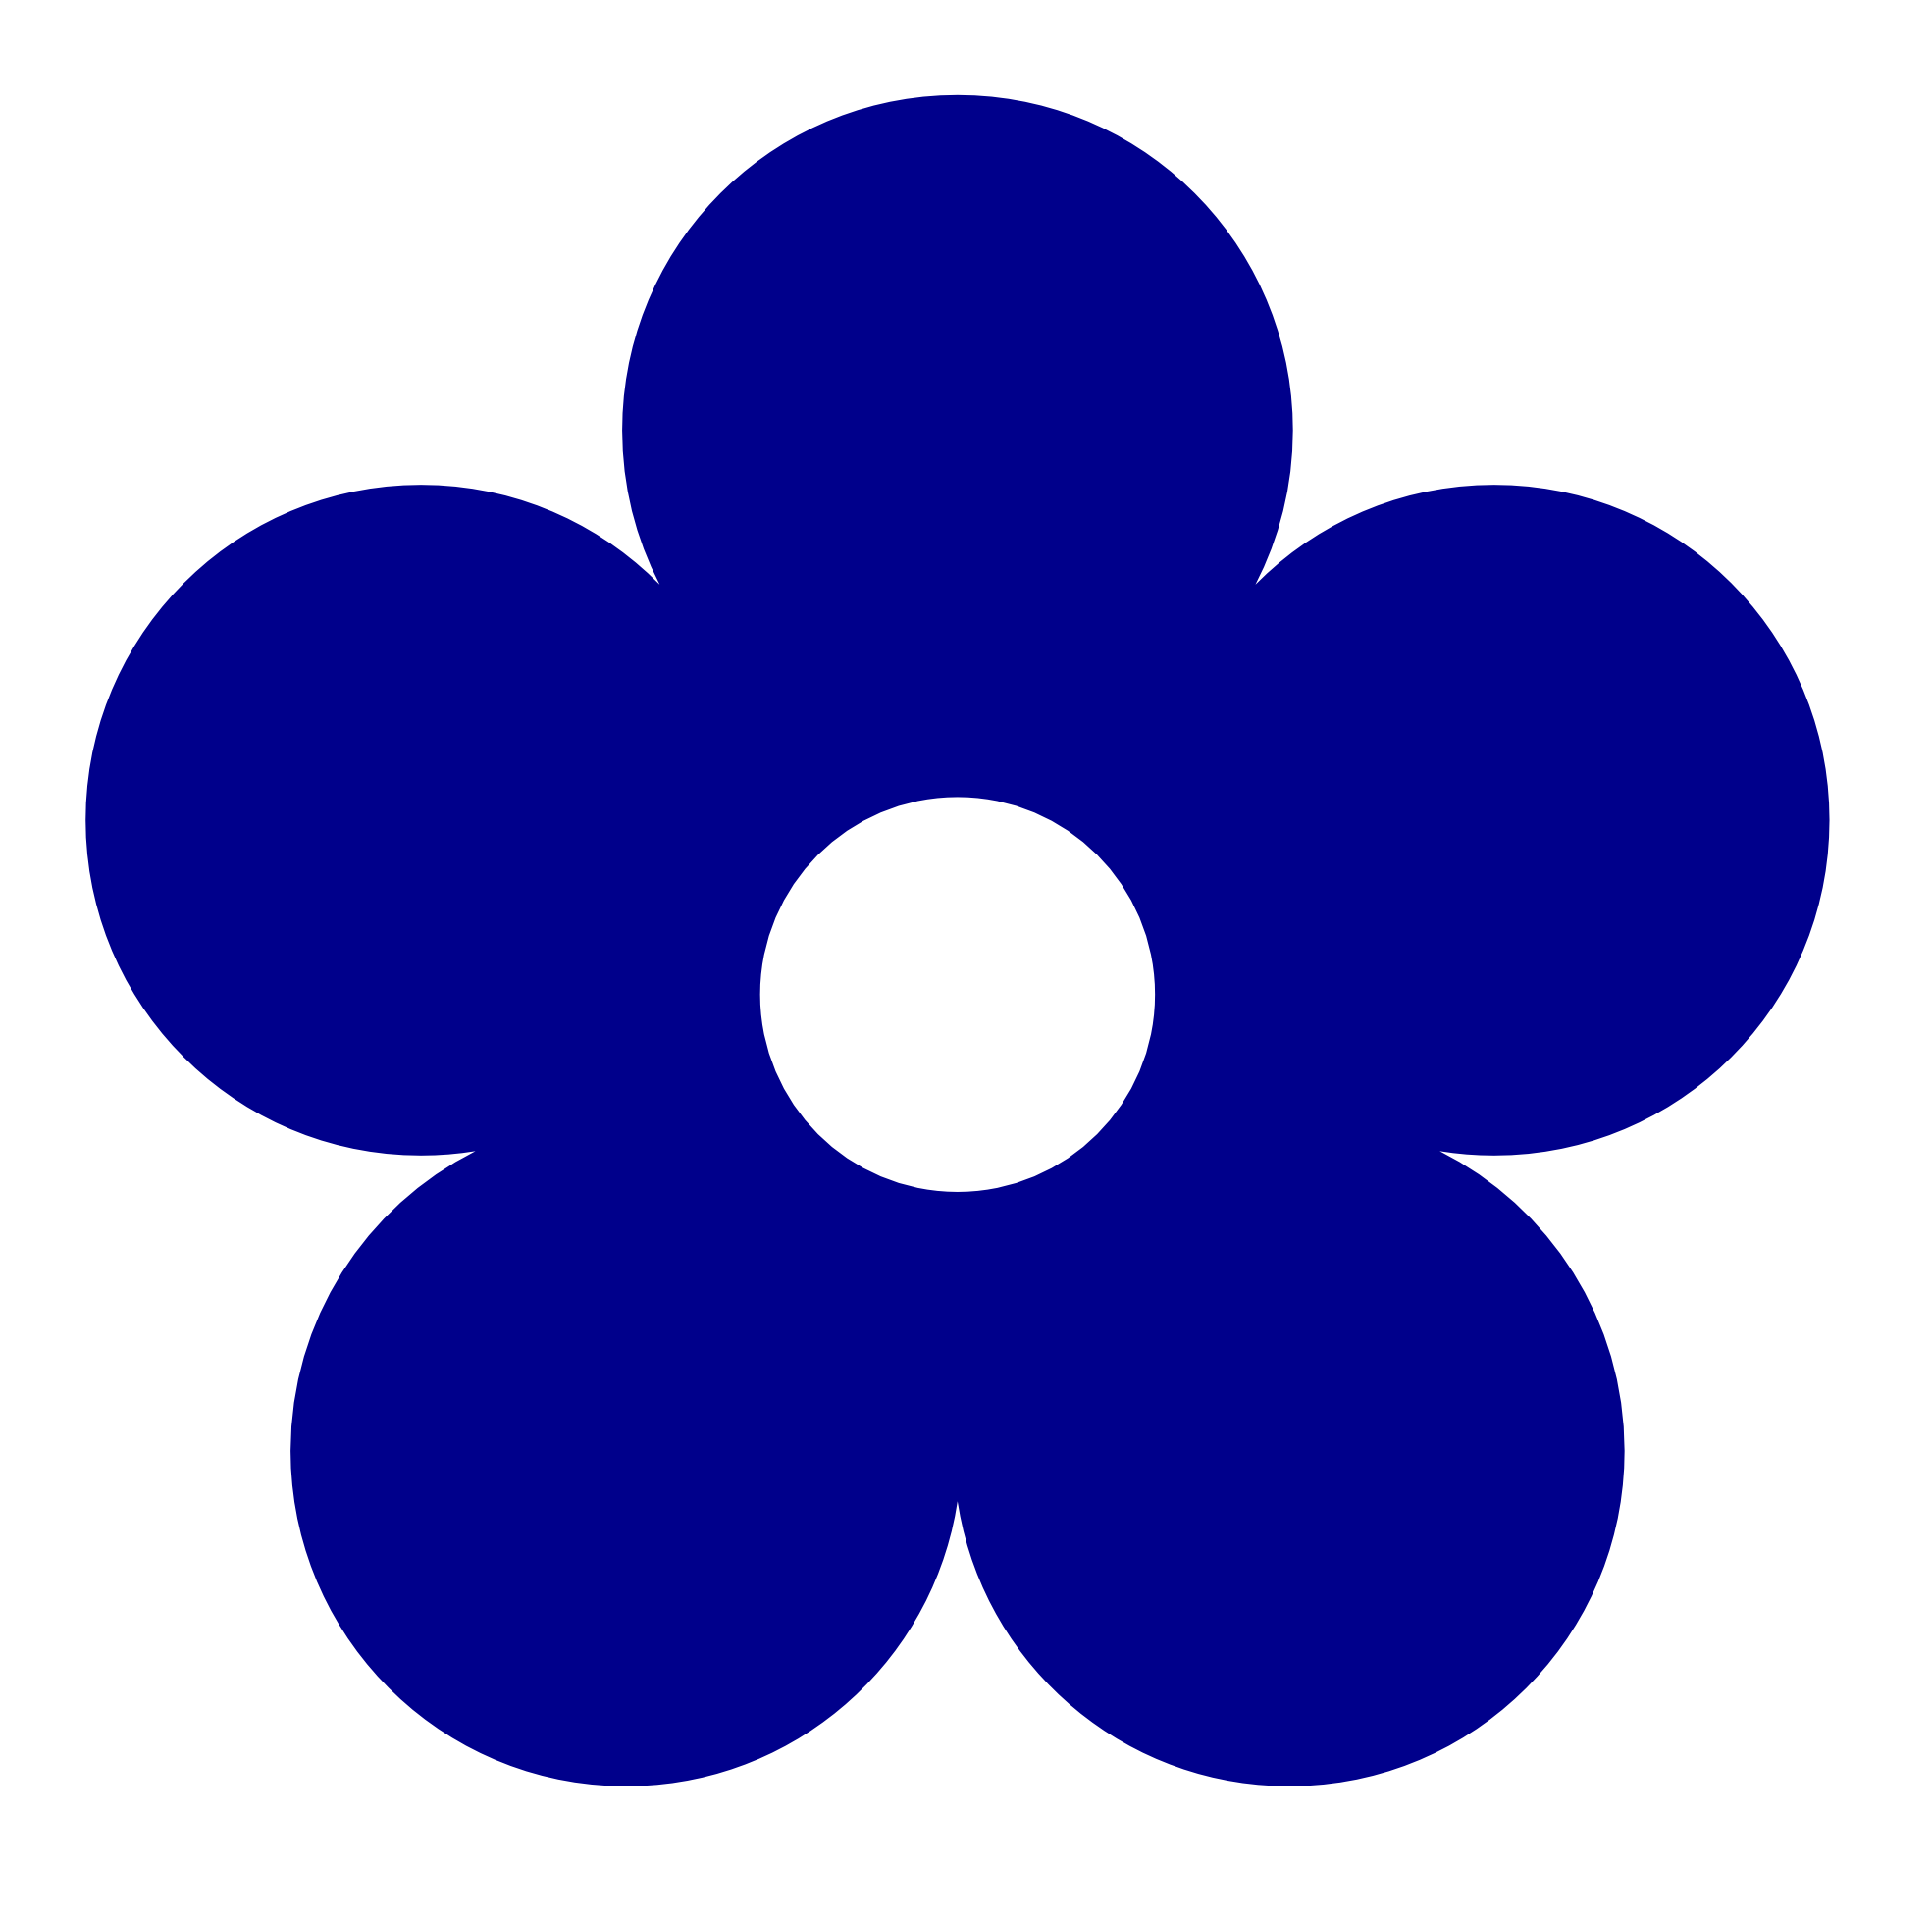 Floral clipart abstract Clipart Flower Dark  Blue